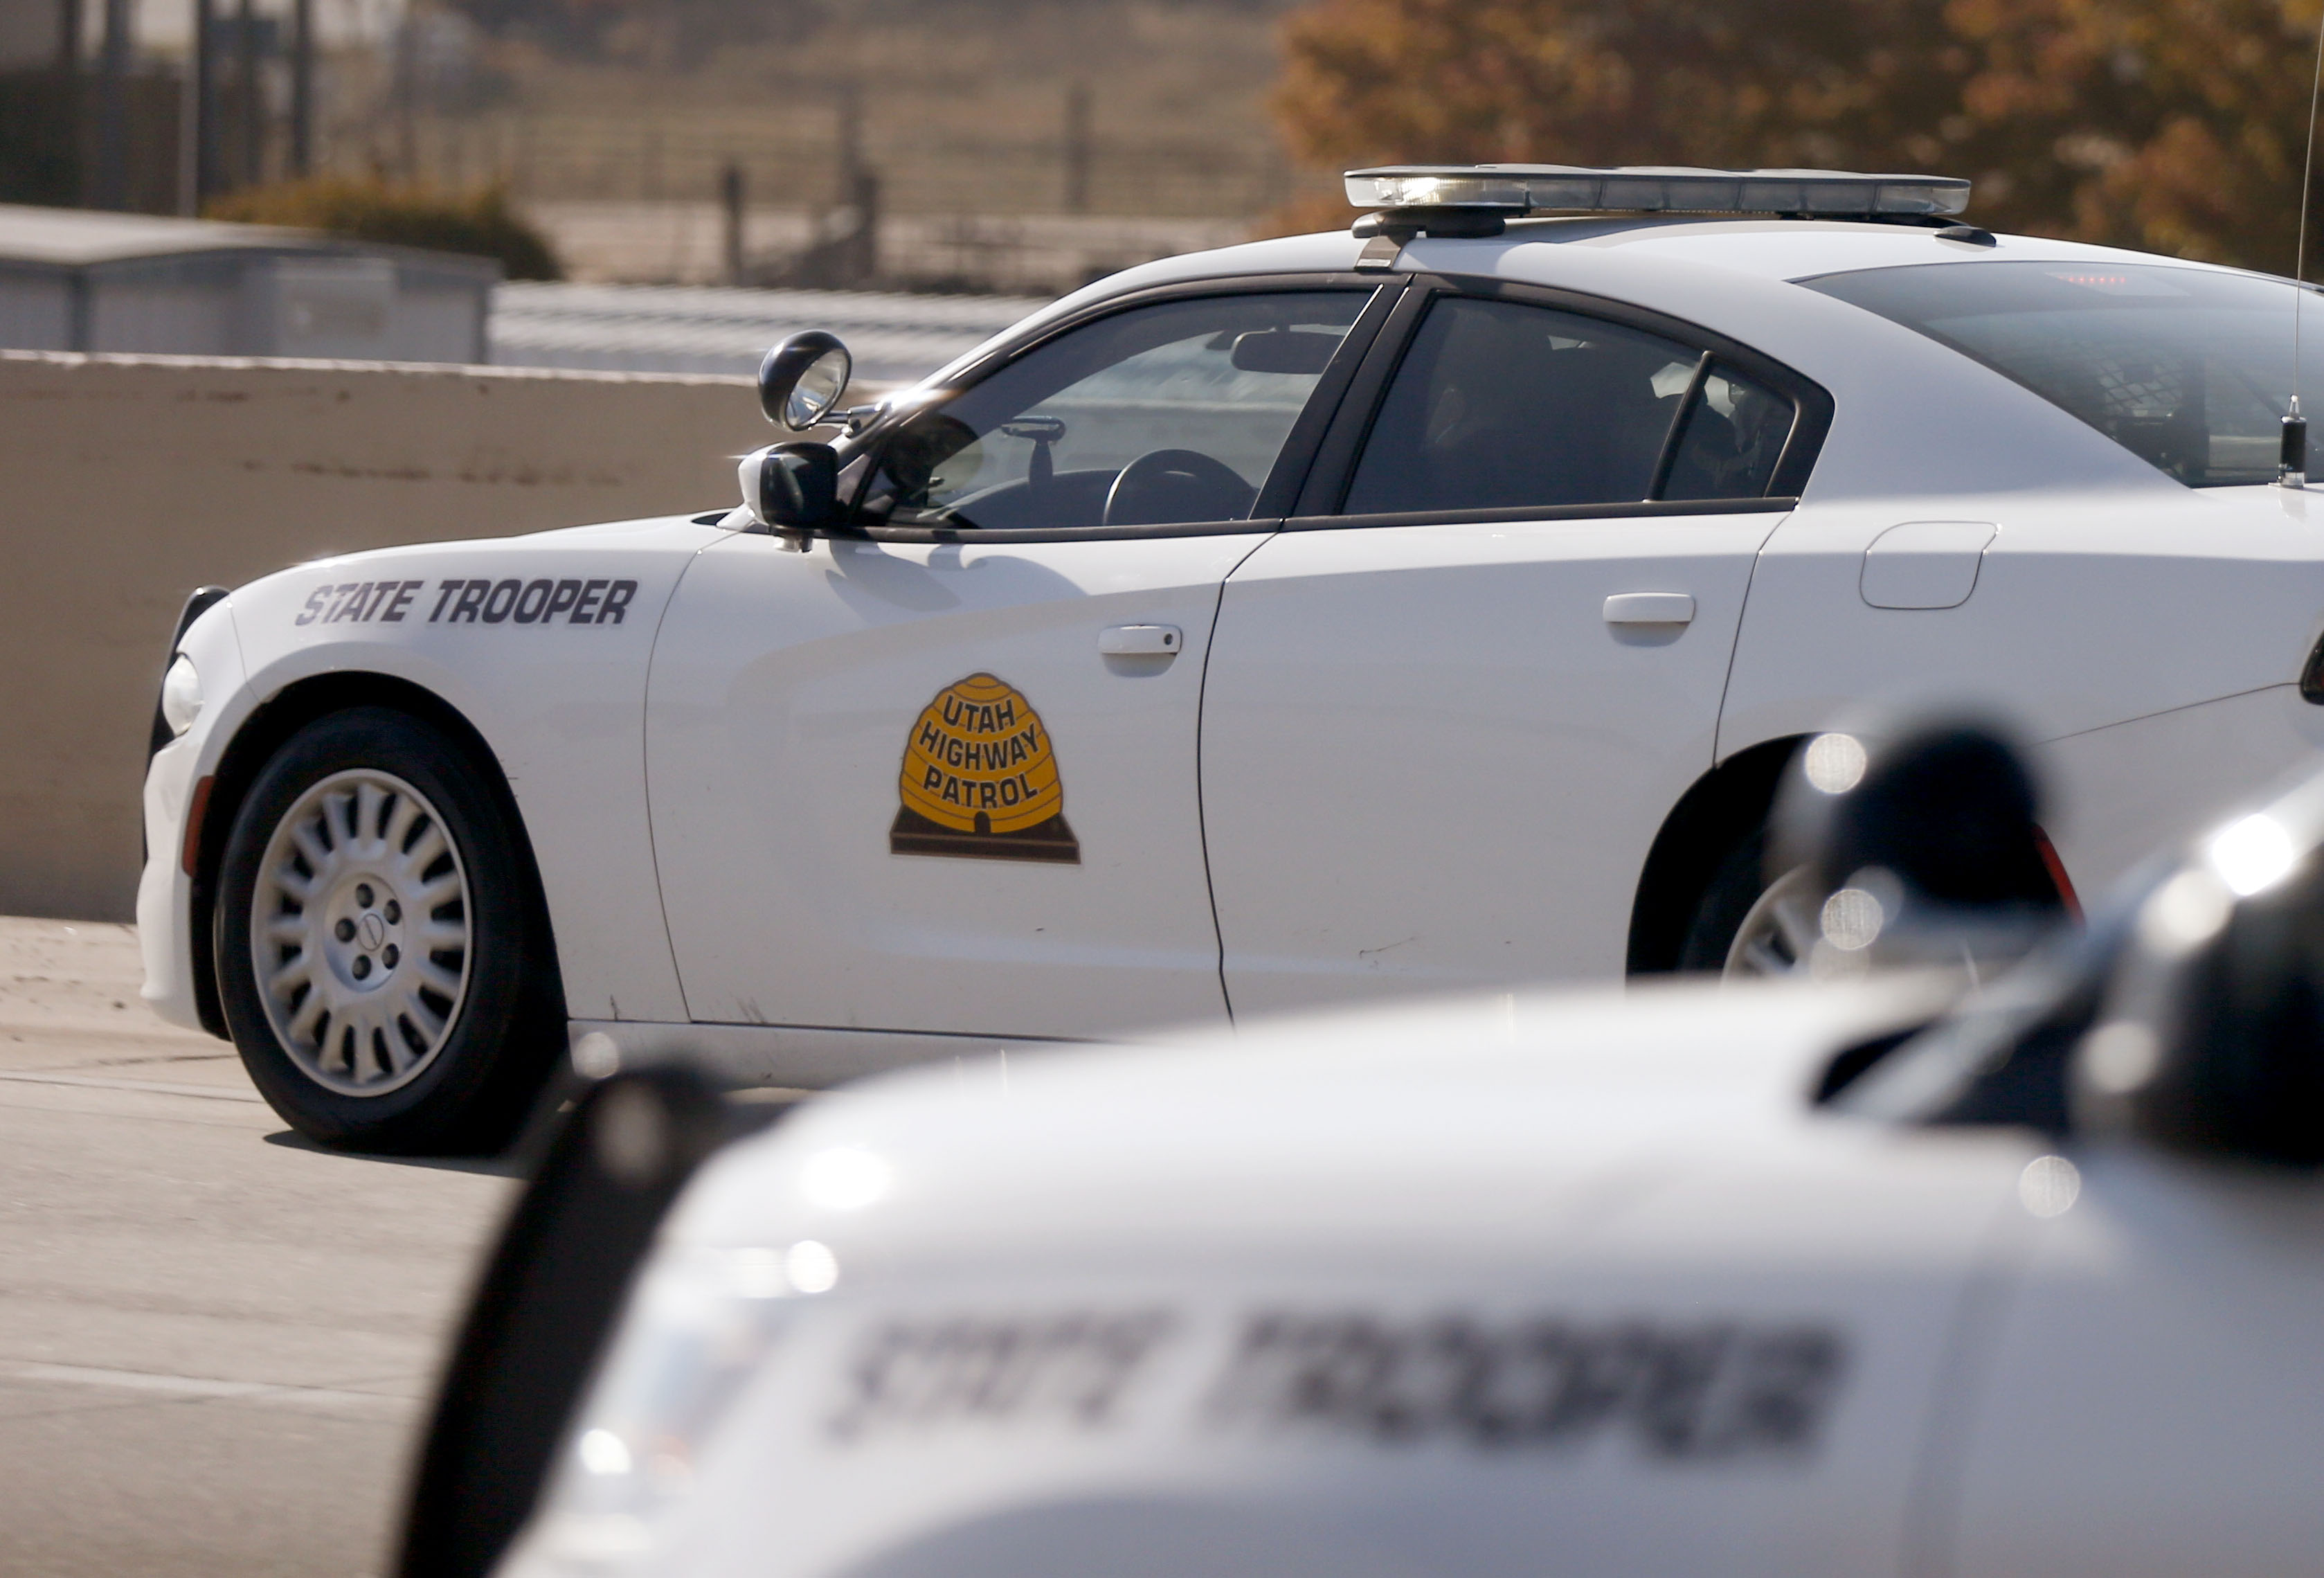 Utah Highway Patrol vehicles are pictured on I-15 in Utah County on Thursday, Oct. 29, 2020.